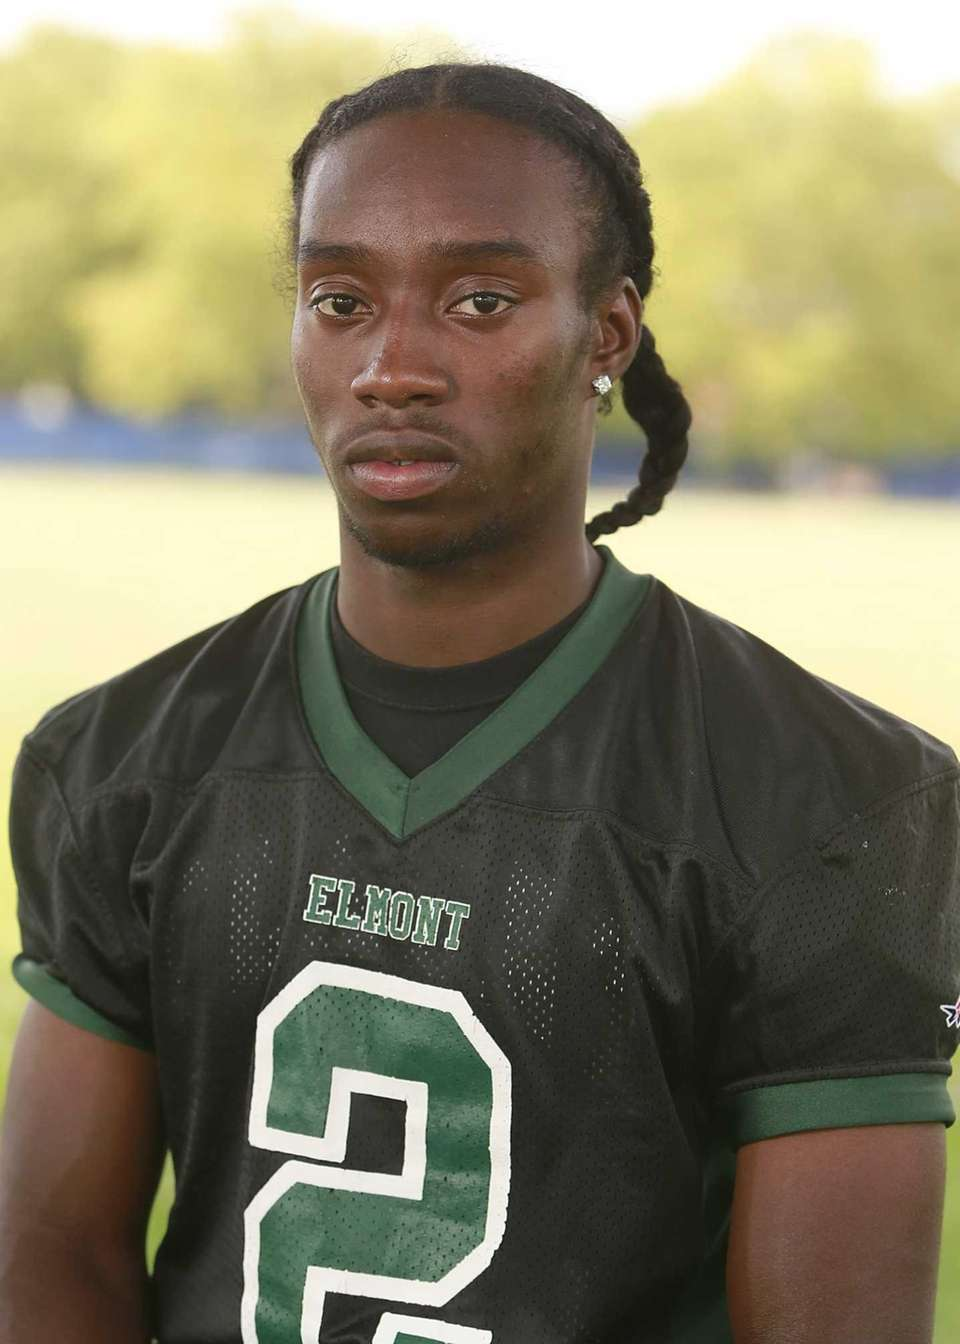 Elmont, senior Wide receiver/defensive back With speed, strength,